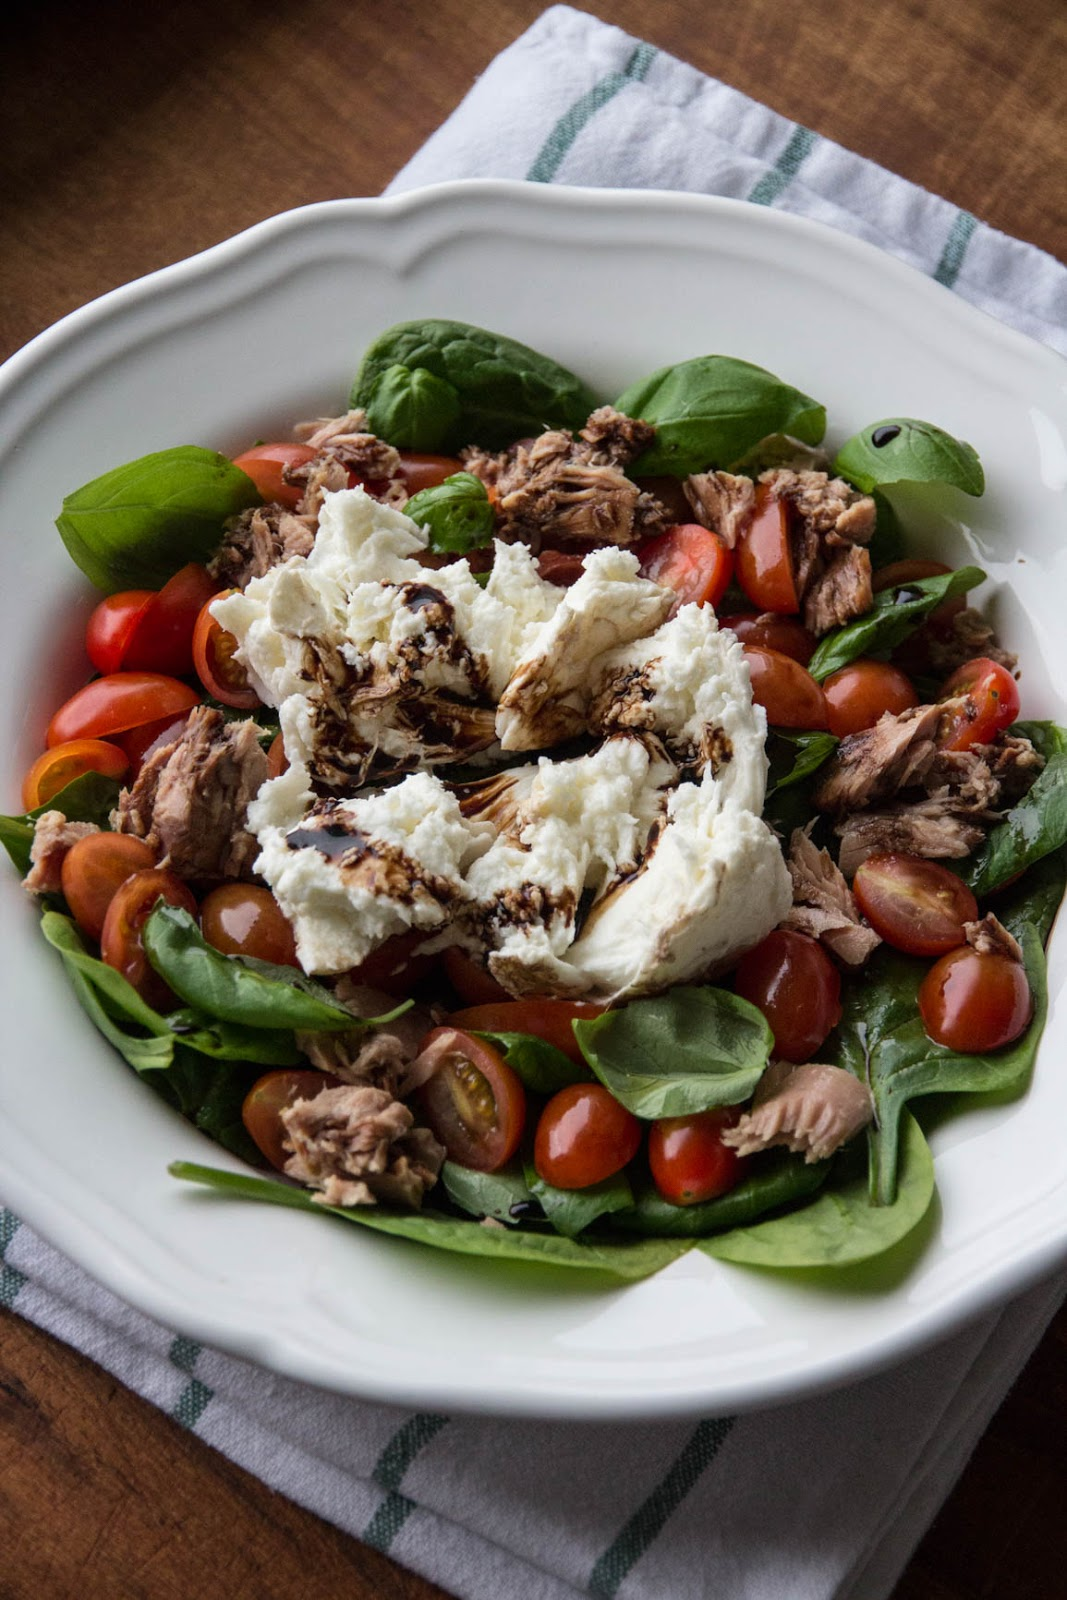 majamanborg: Caprese salad with tuna and spinach